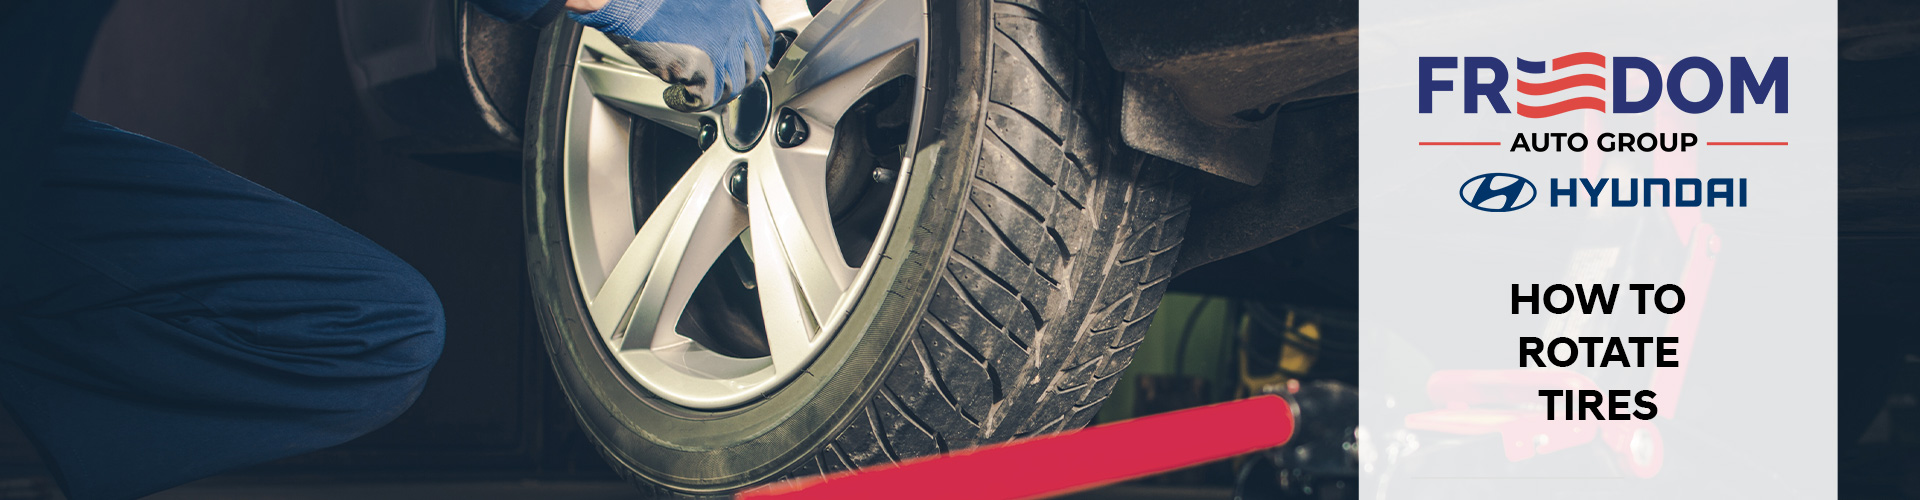 How to rotate your Hyundai tires at Freedom Hyundai in Hamburg